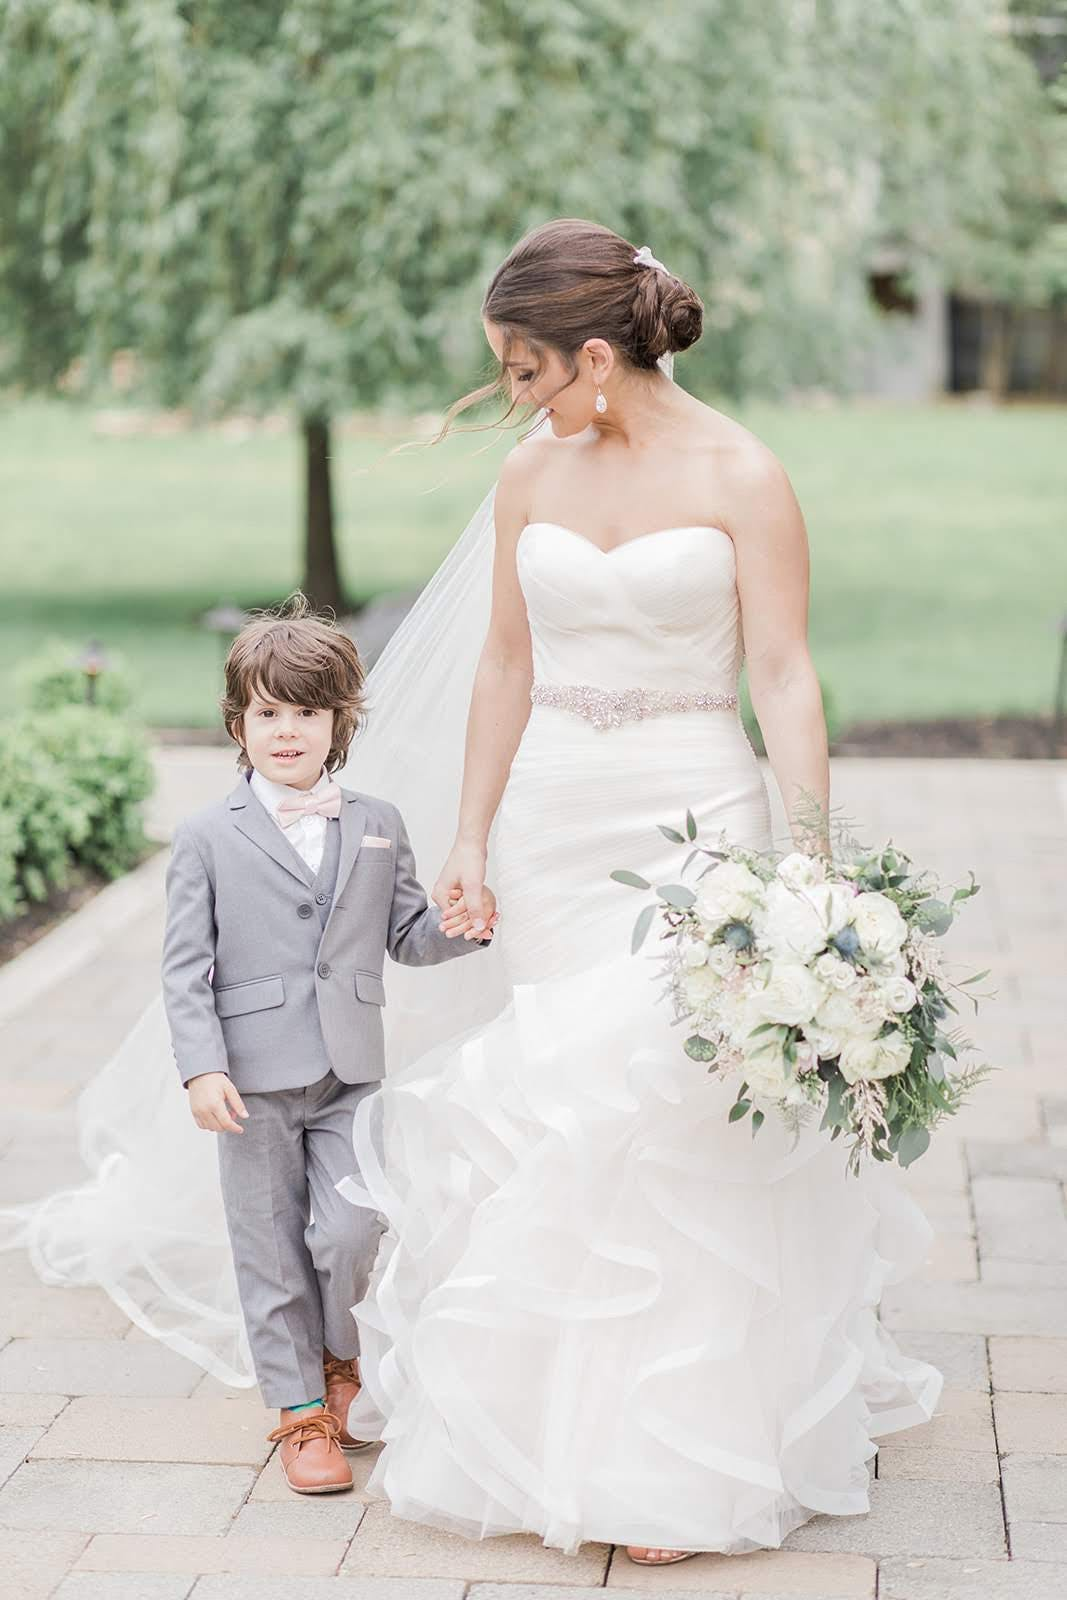 Cute gift ideas for ring bearers